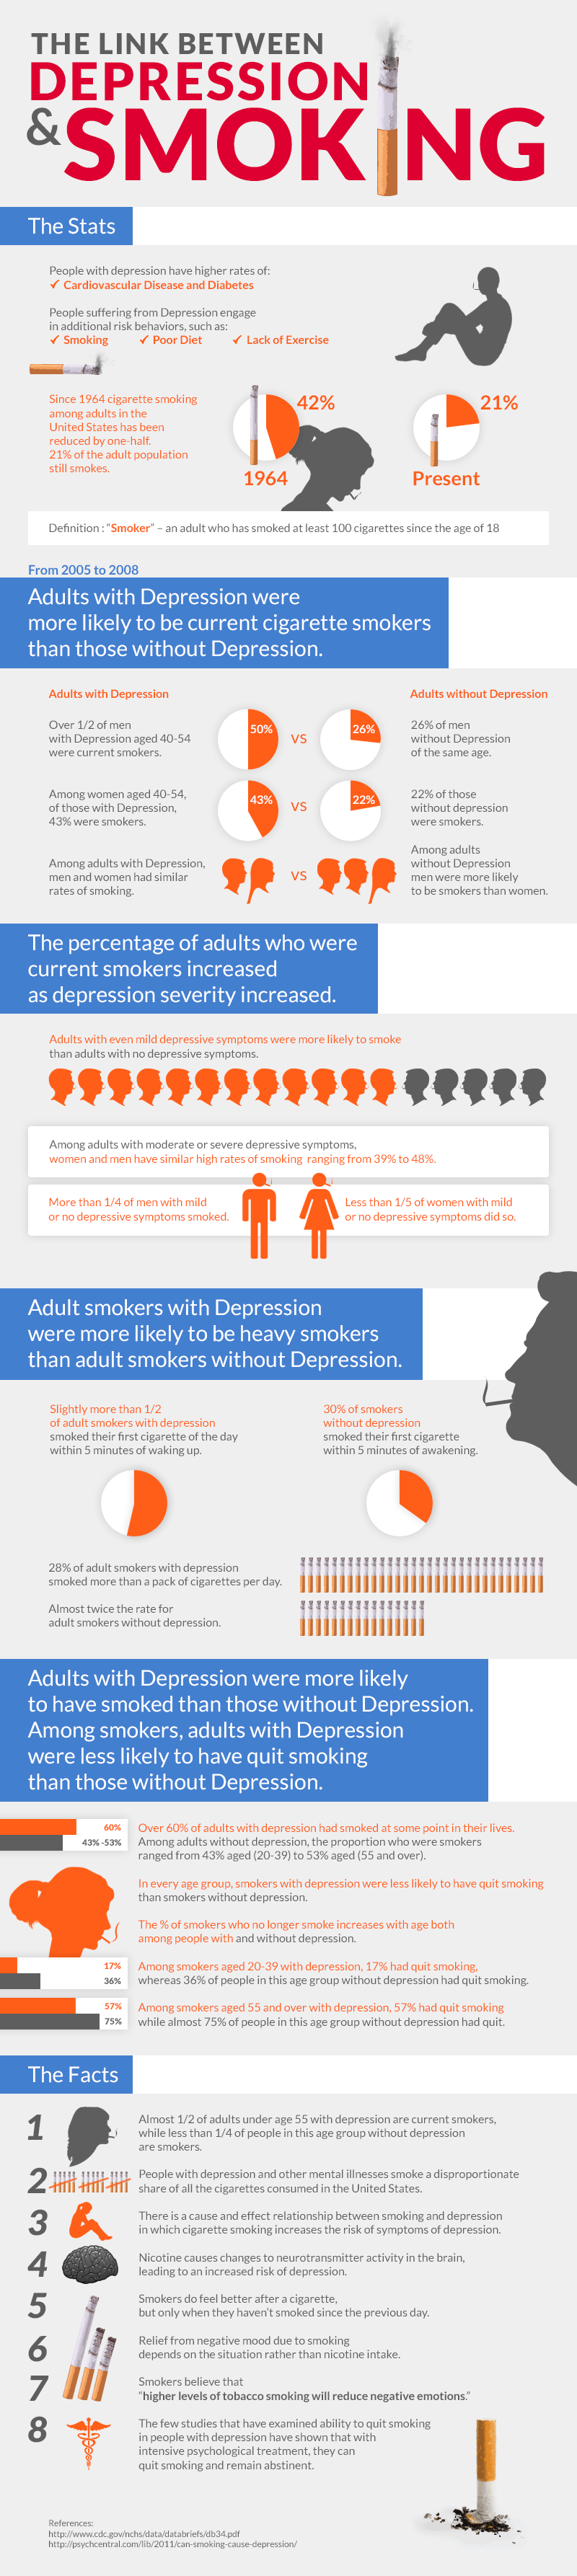 How is Smoking Related to Depression? - Infographic